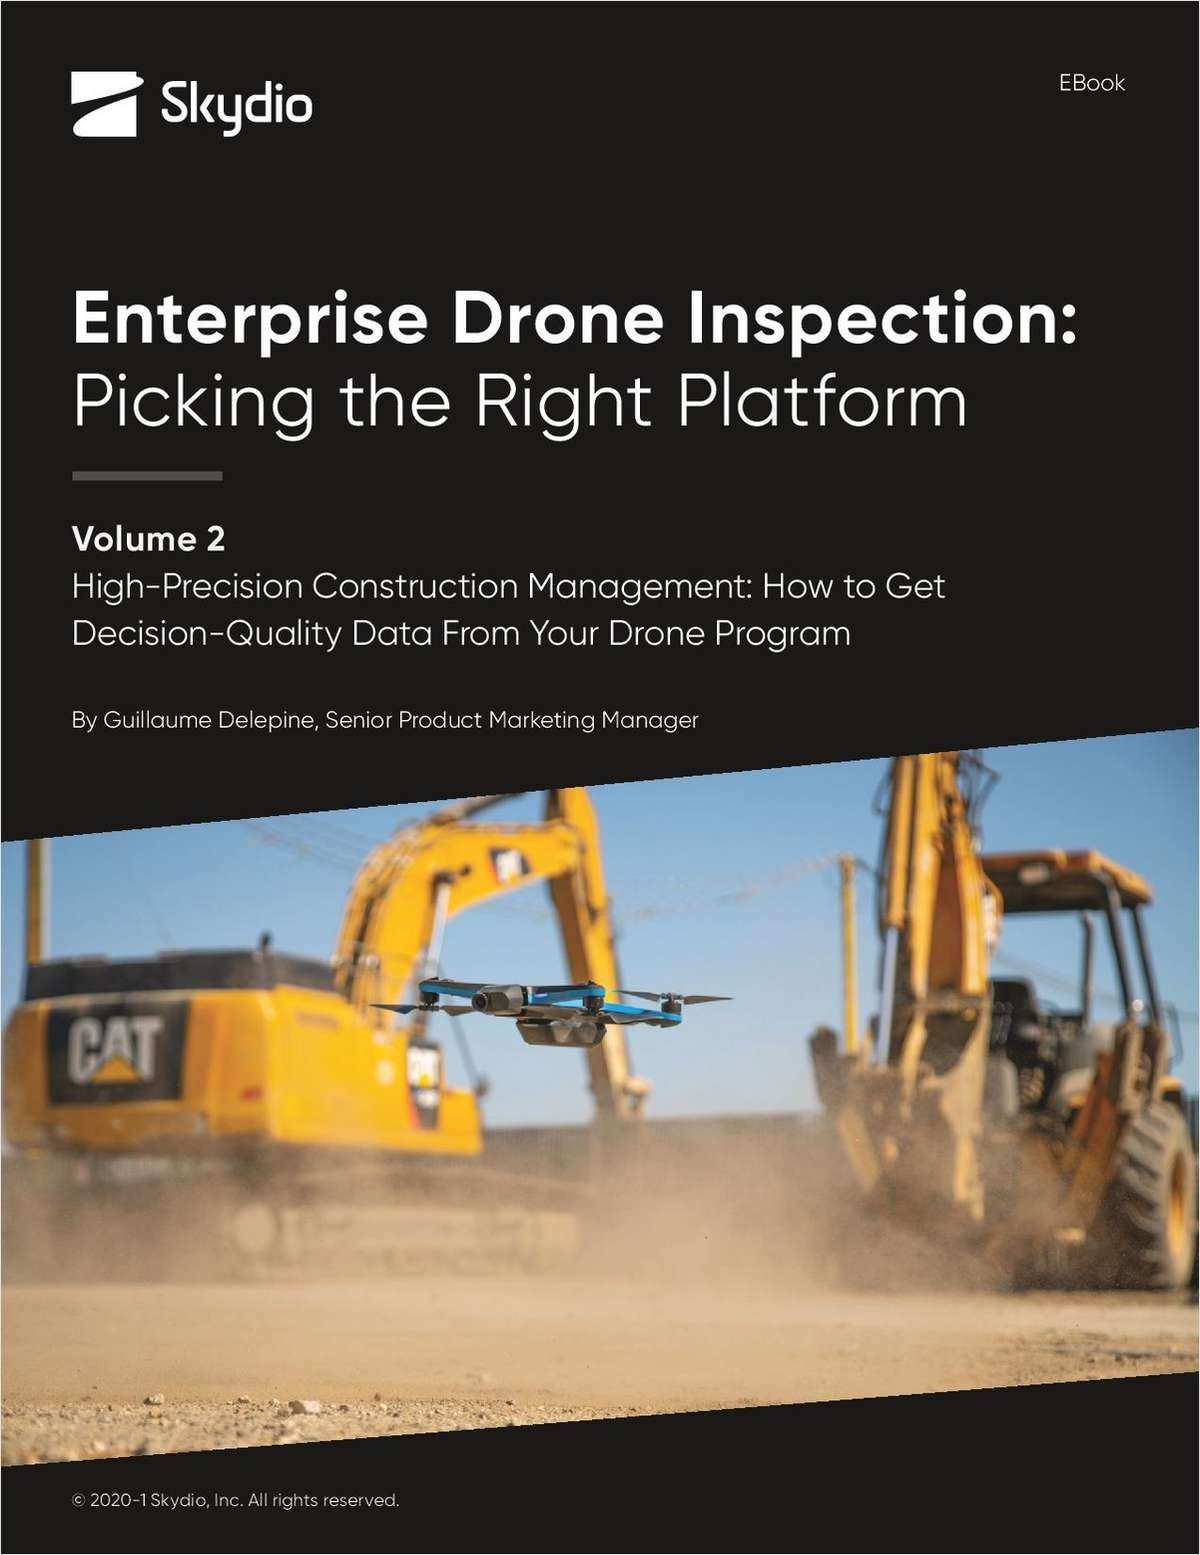 Construction Management: How to Get Decision-Quality Data From Your Drone Program